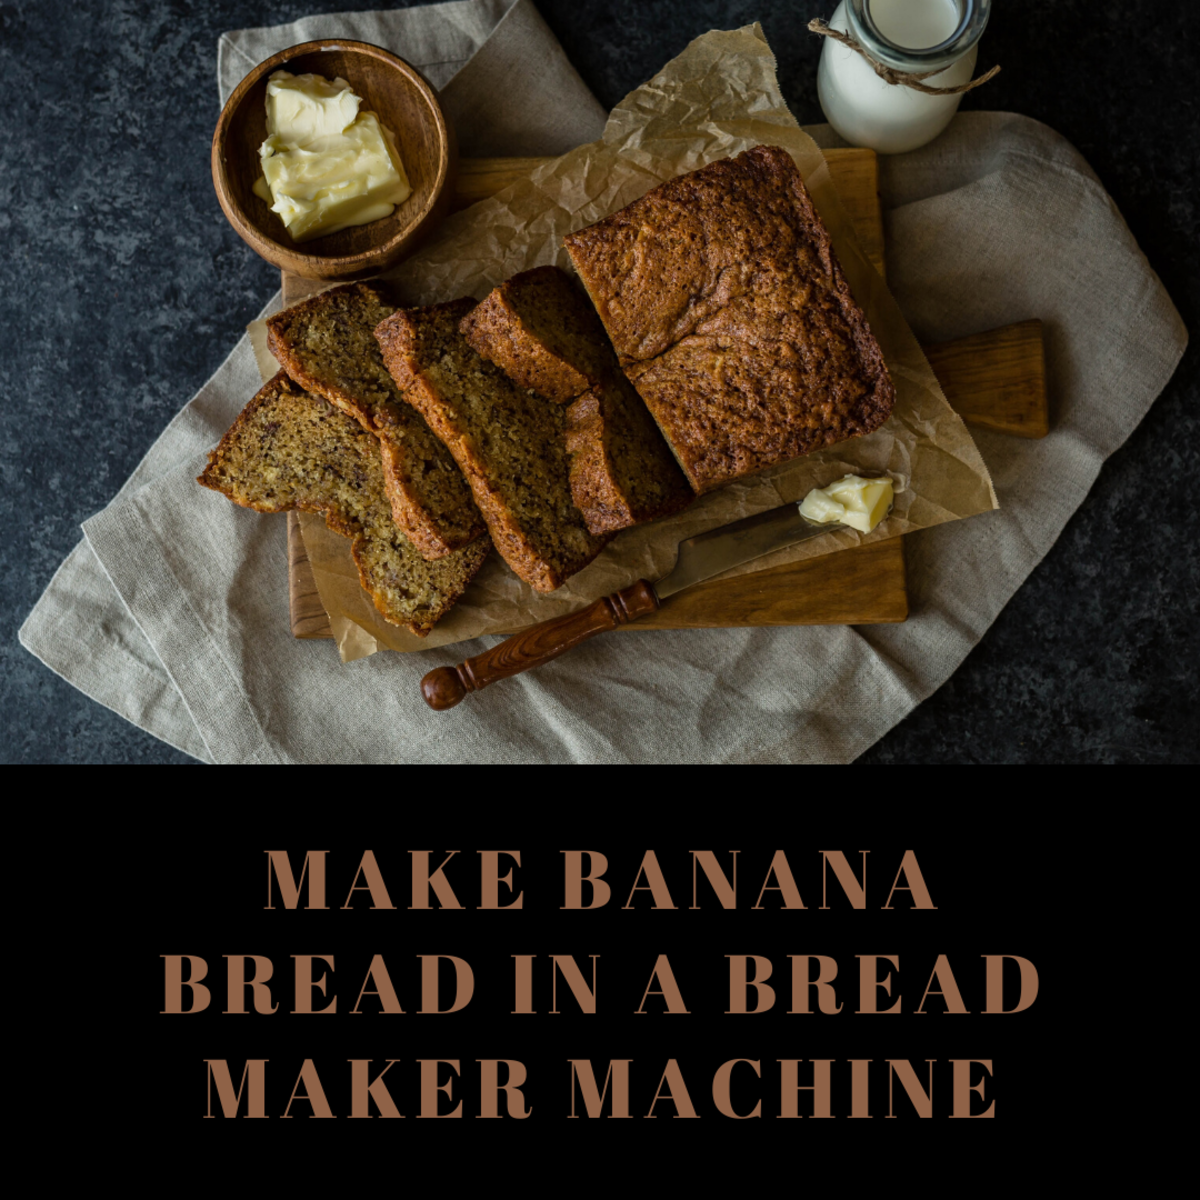 How to Make Banana Bread in a Bread Maker Machine